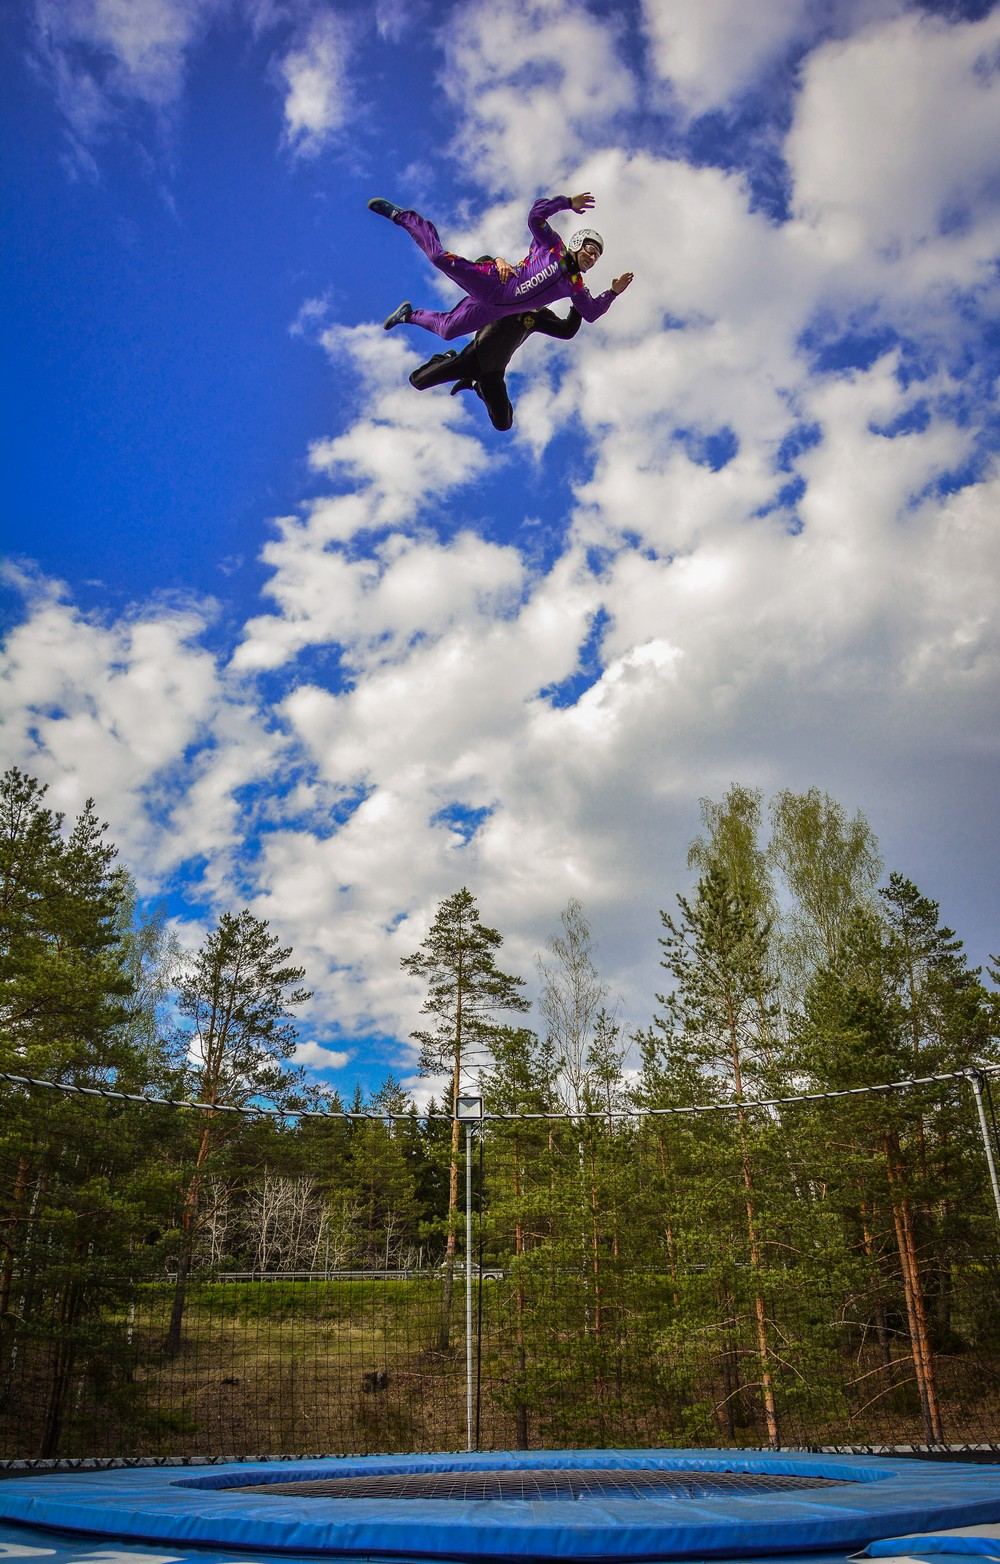 Flying high in Aerodium, Latvia